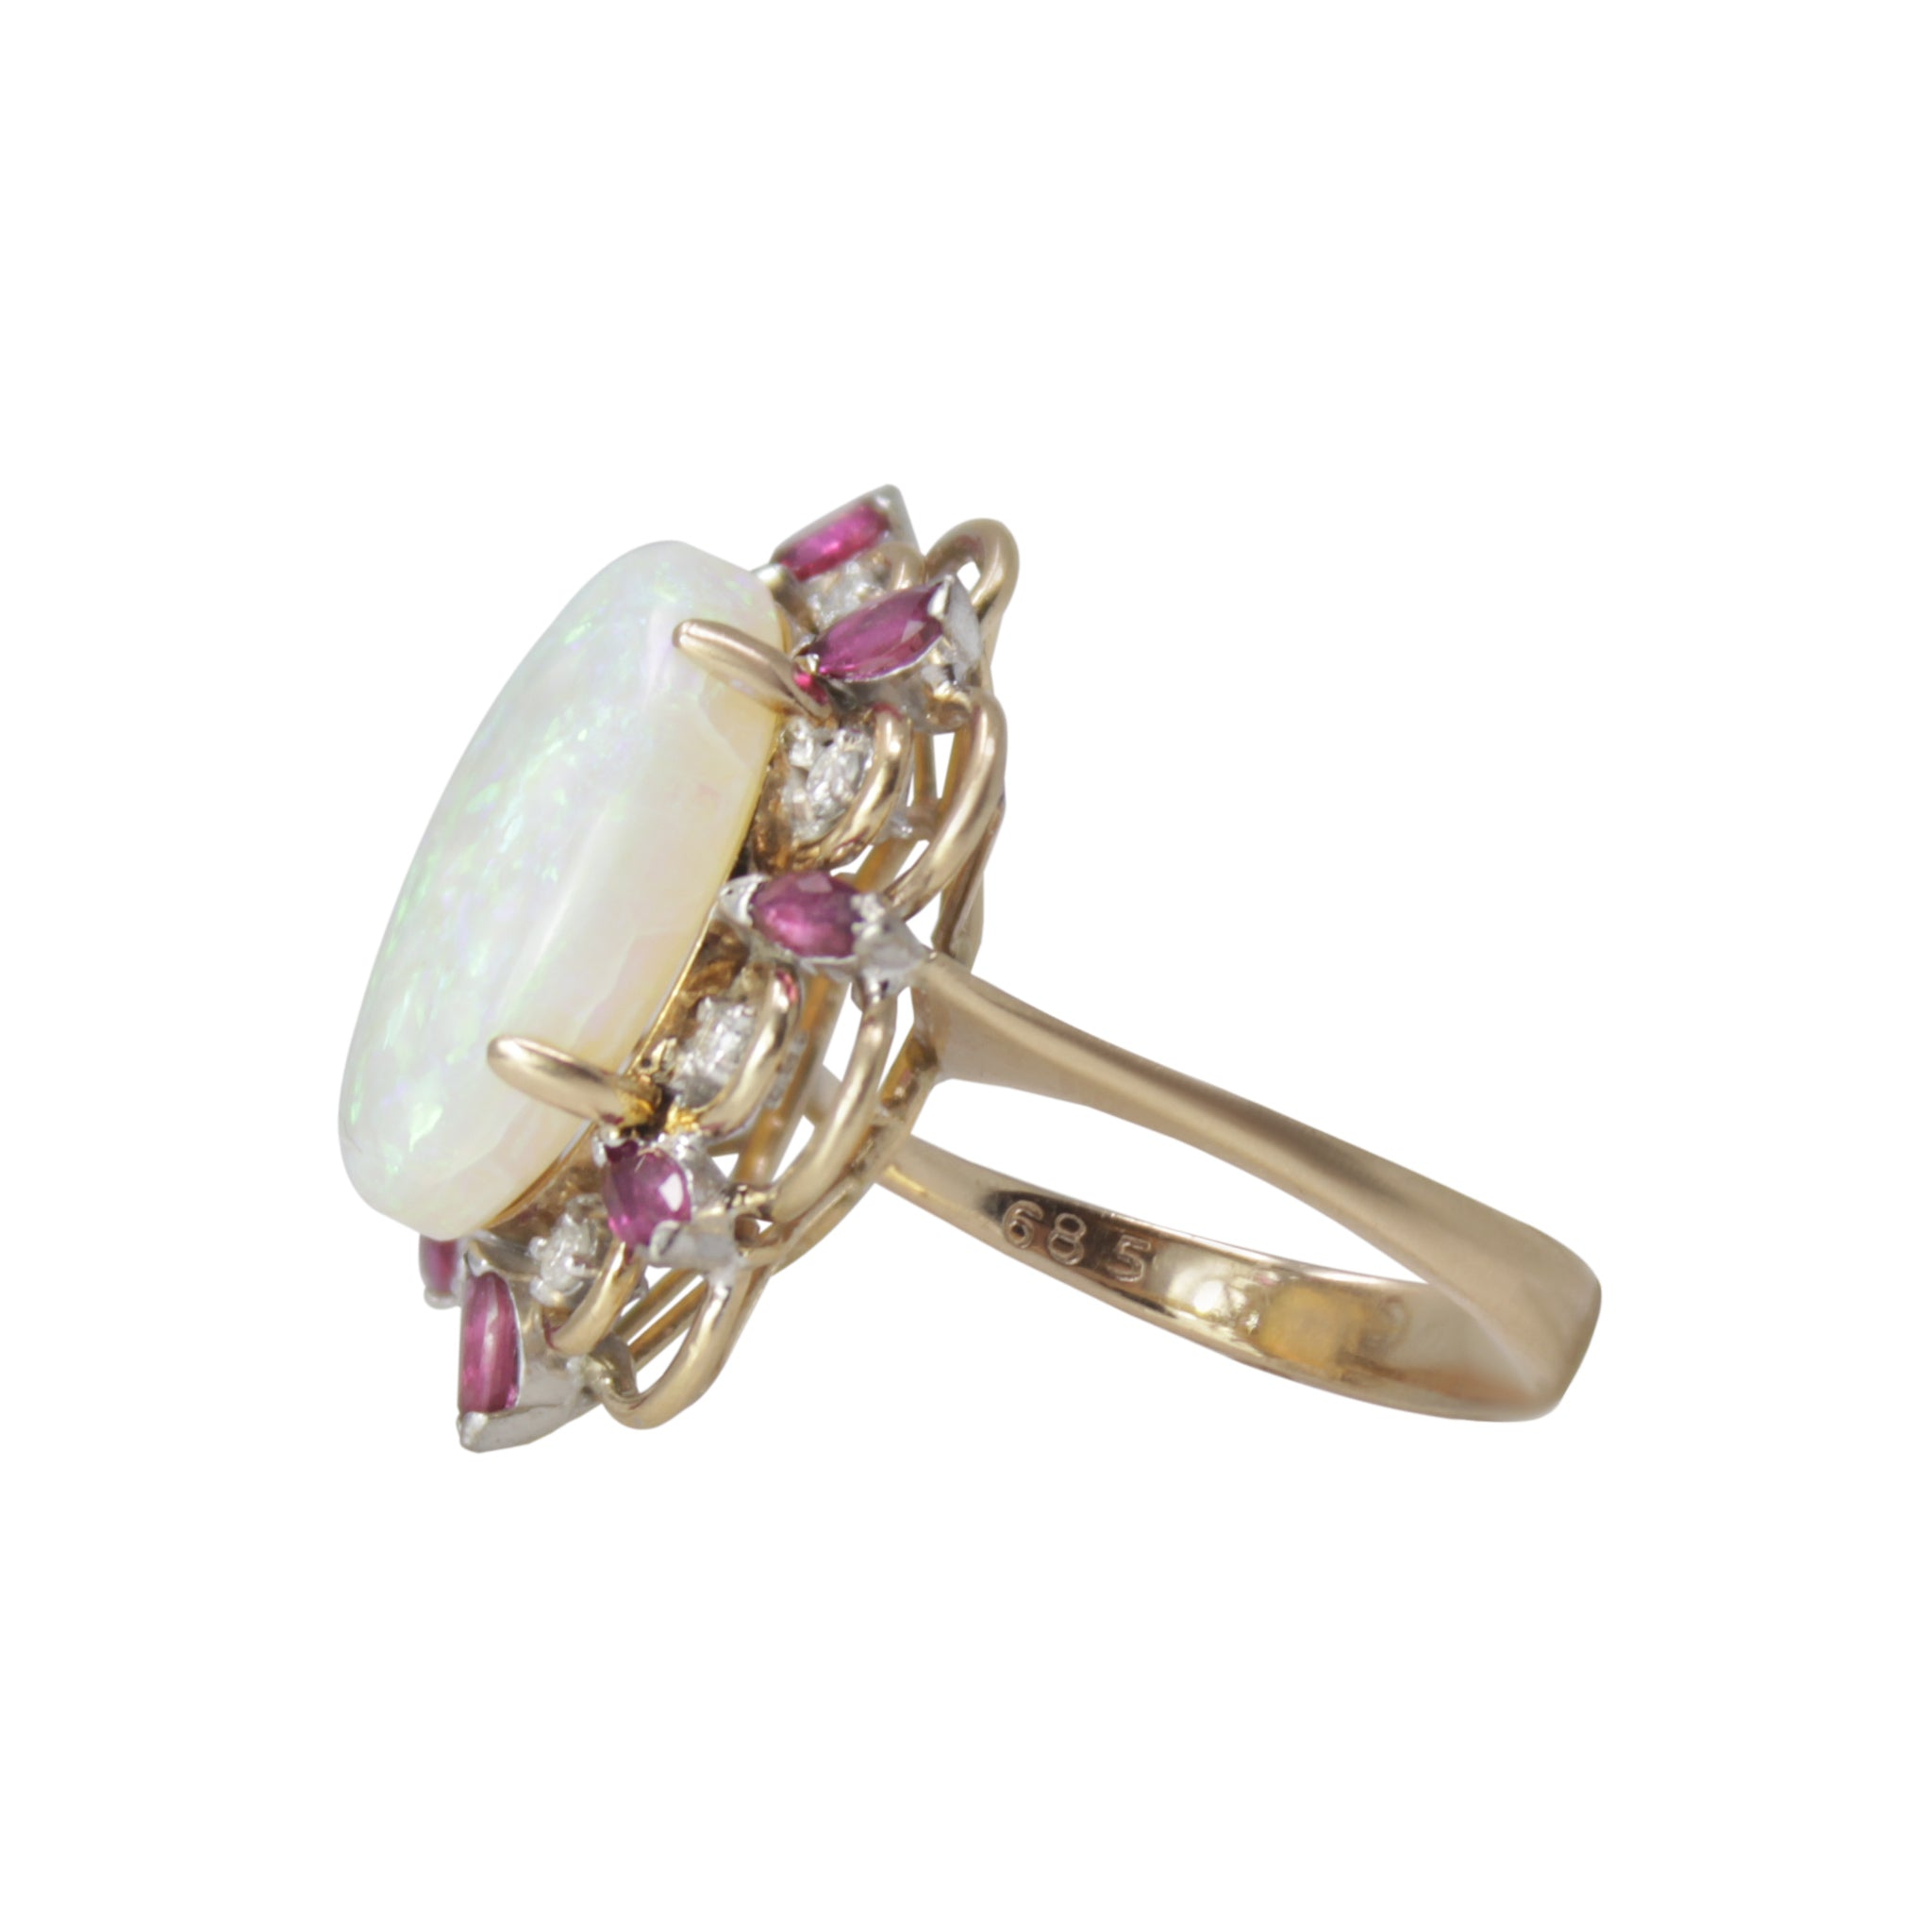 Dazzling Opal Ring- 14k Yellow Gold Diamond Ruby w/ Opal Vintage Large Solitaire Ring